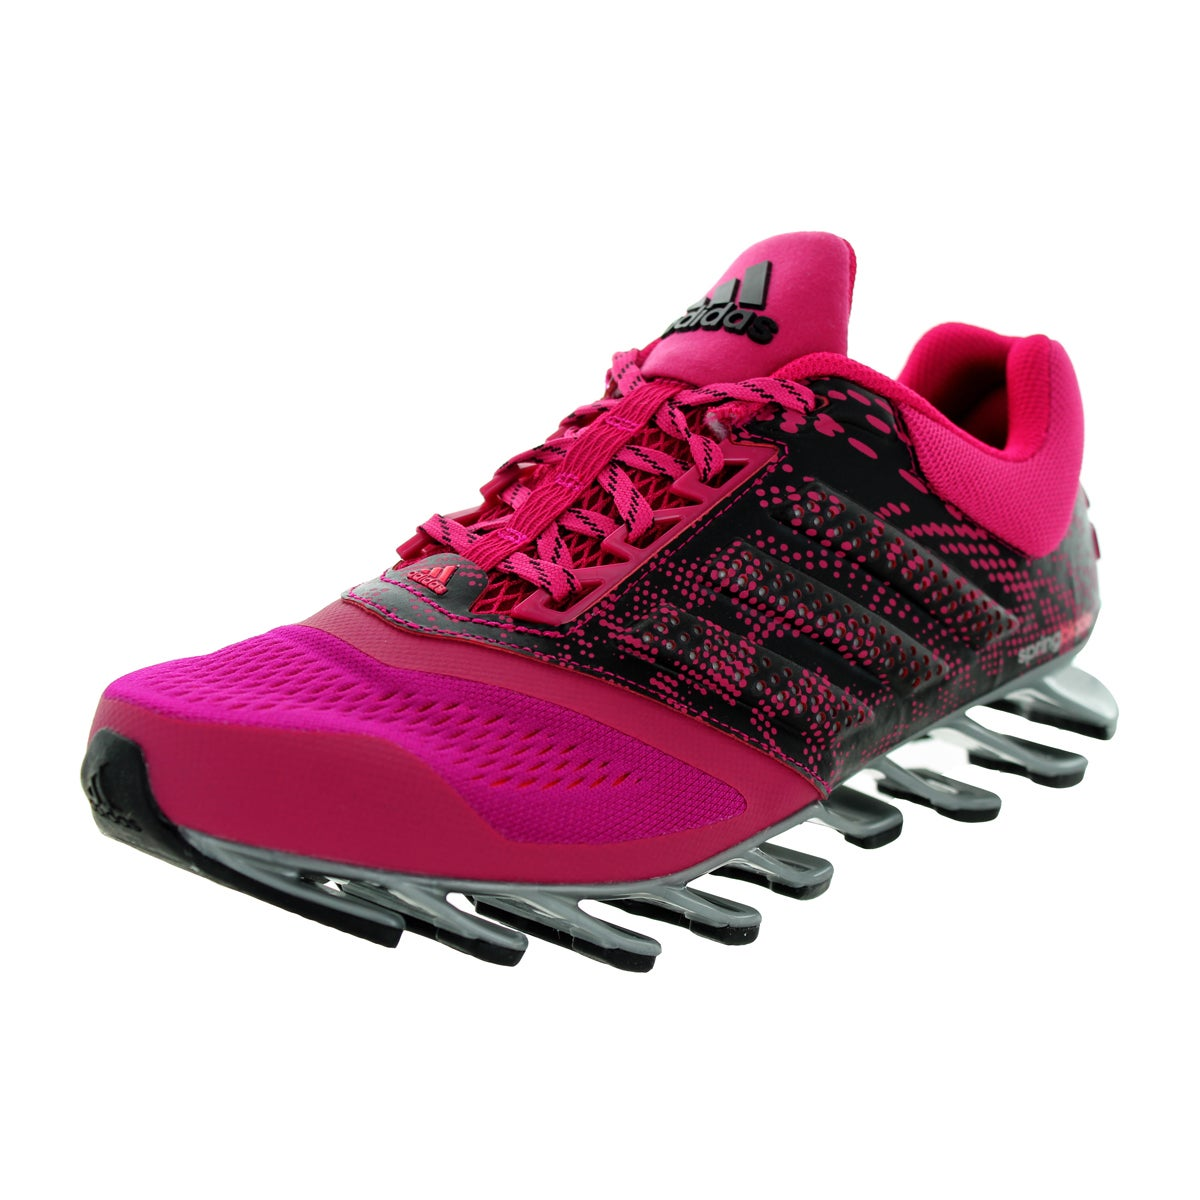 Womens adidas Swift Run Athletic Shoe - green - 436438